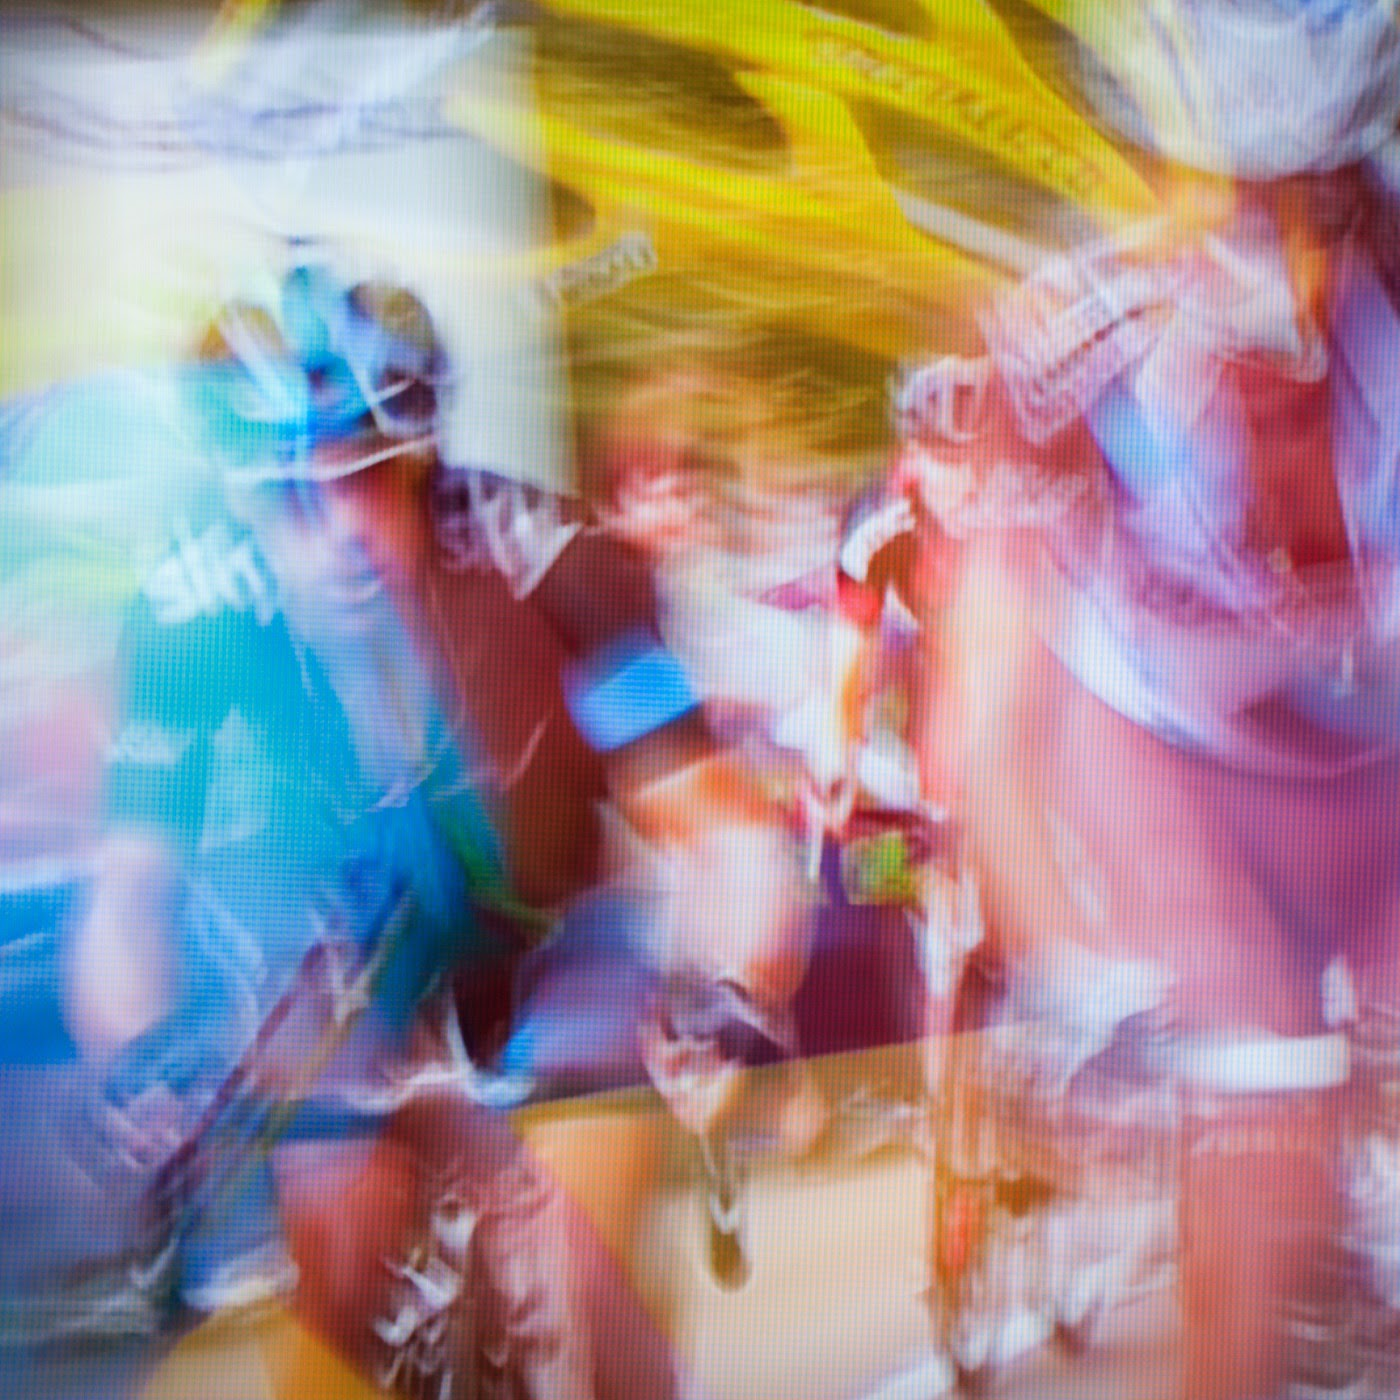 le tour de france, motion blur, blur, abstract, abstraction, tim macauley, photographic art, you won't see this at MoMA, appropriation, found imagery, le tour 2014, tv footage, portrait, timothy Macauley, the light monkey collective, grand cycling tour, richie porte, team sky